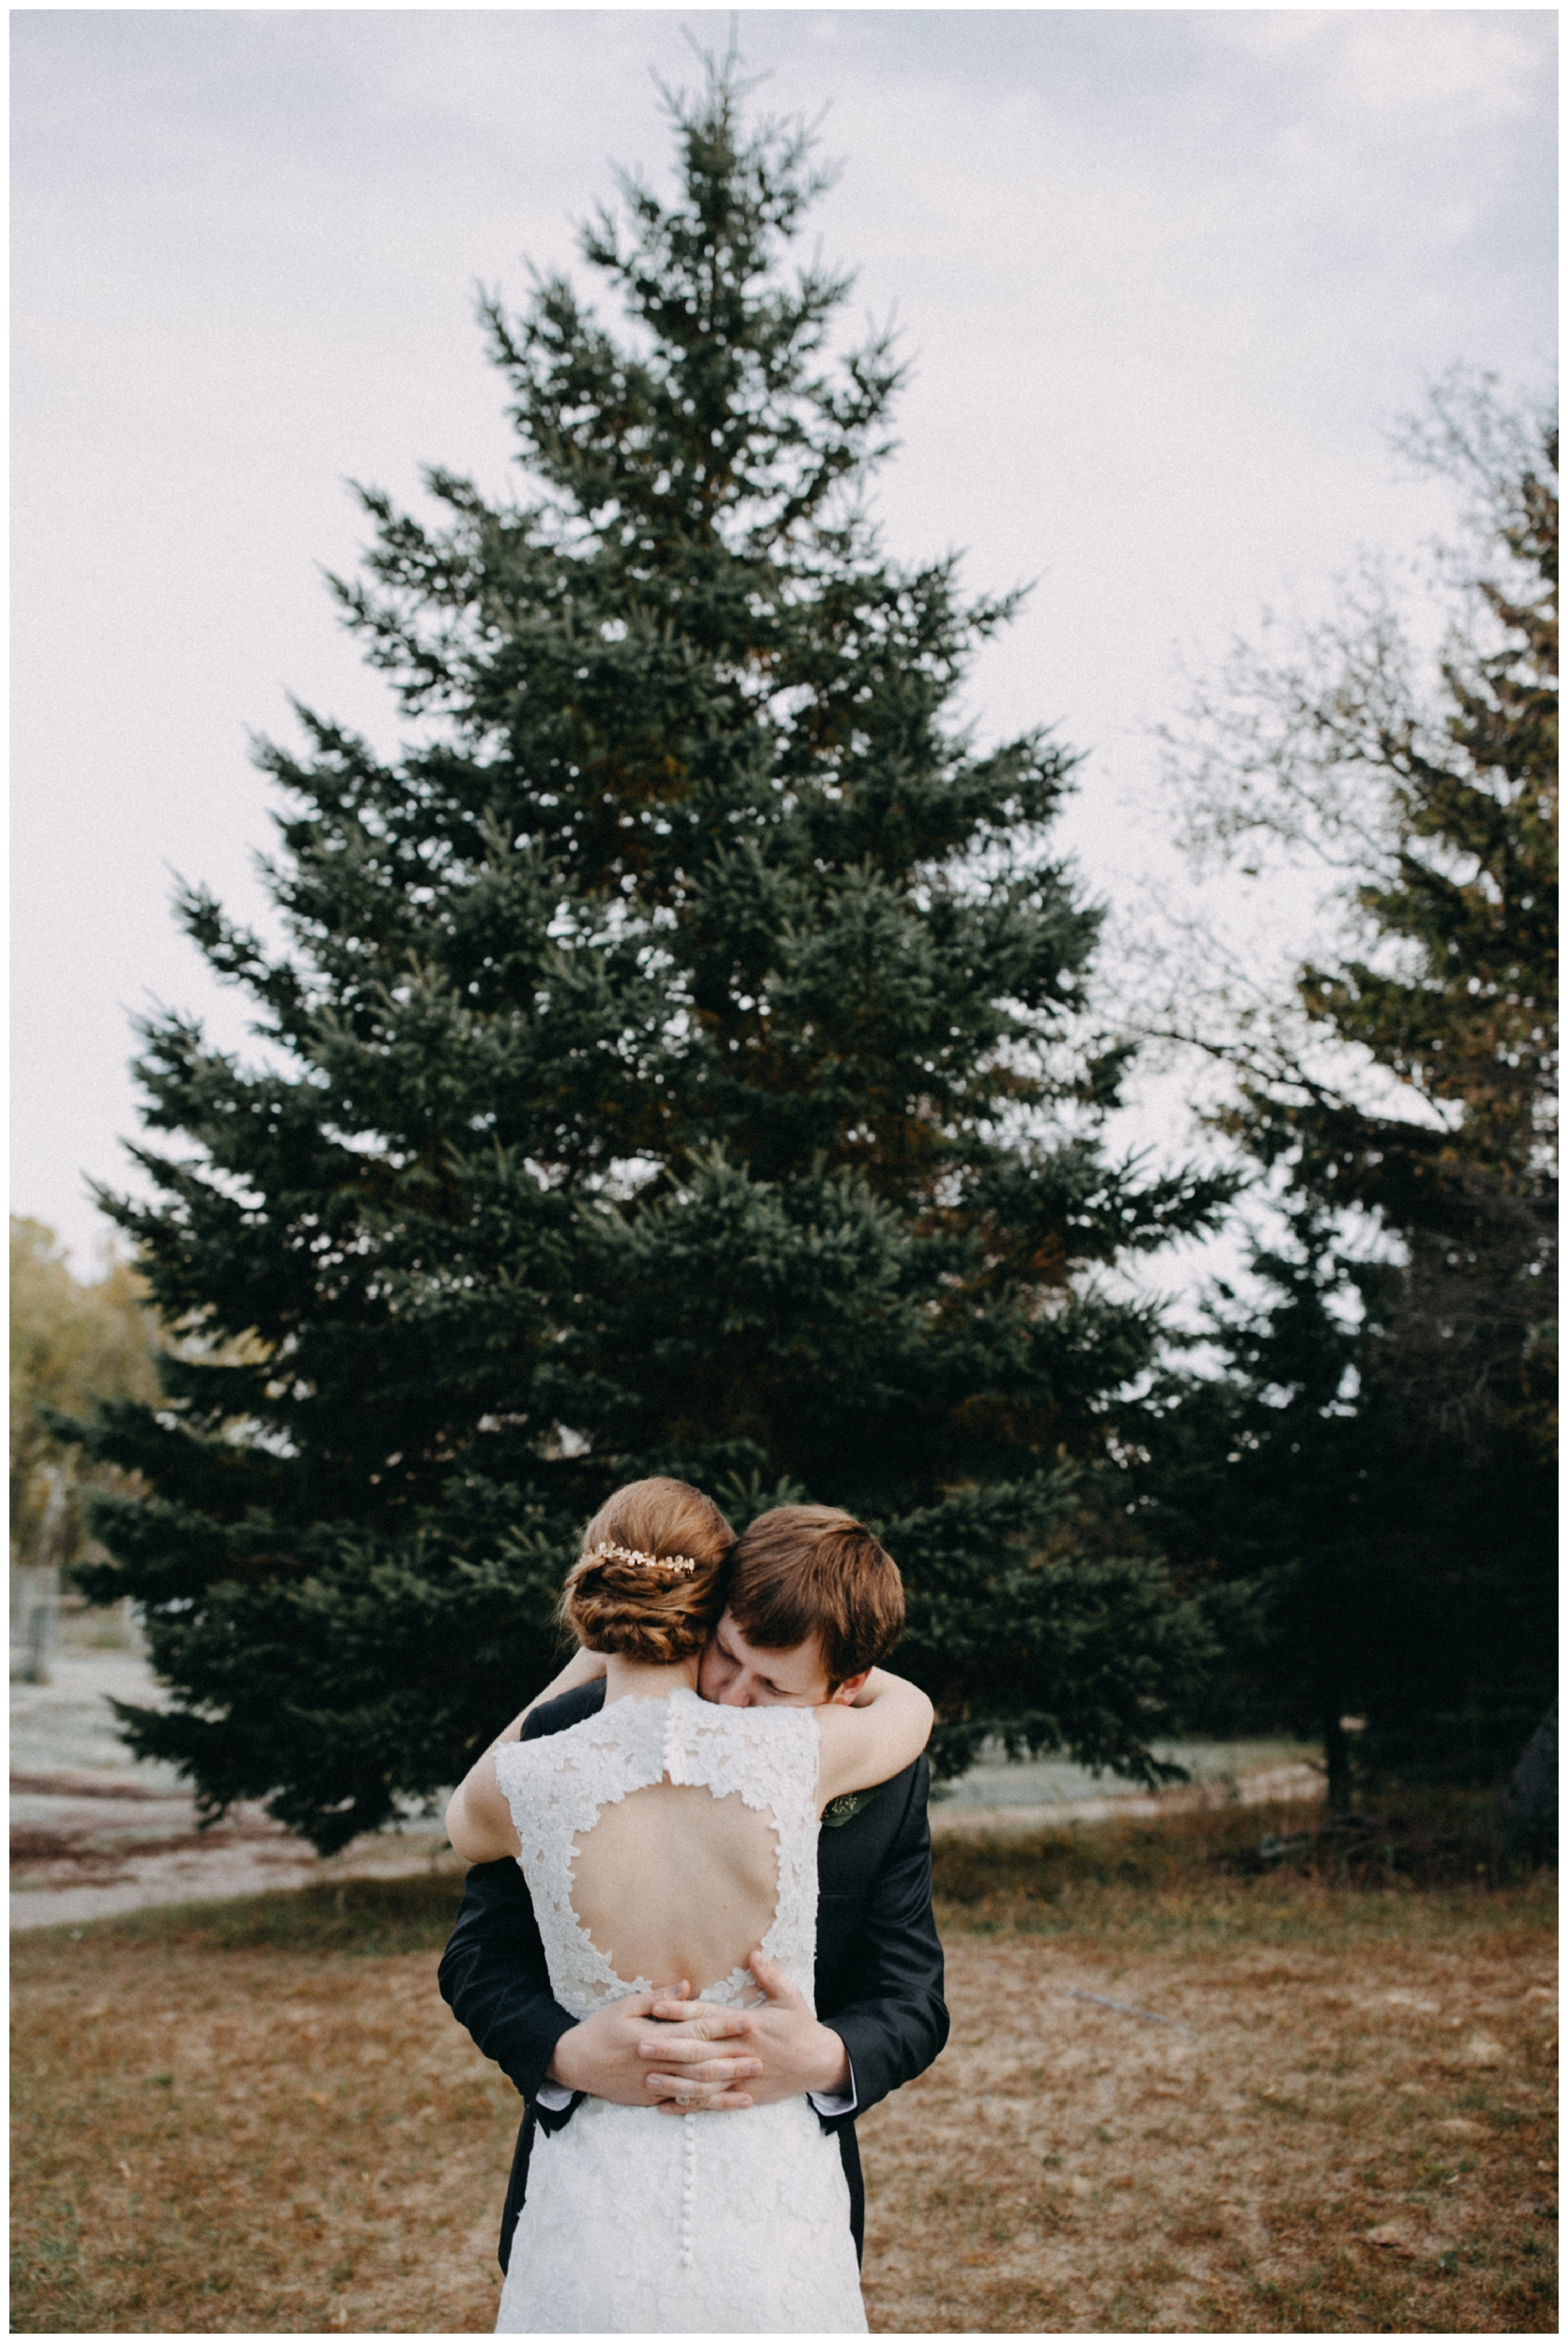 Cozy up north October wedding in Brainerd Minnesota